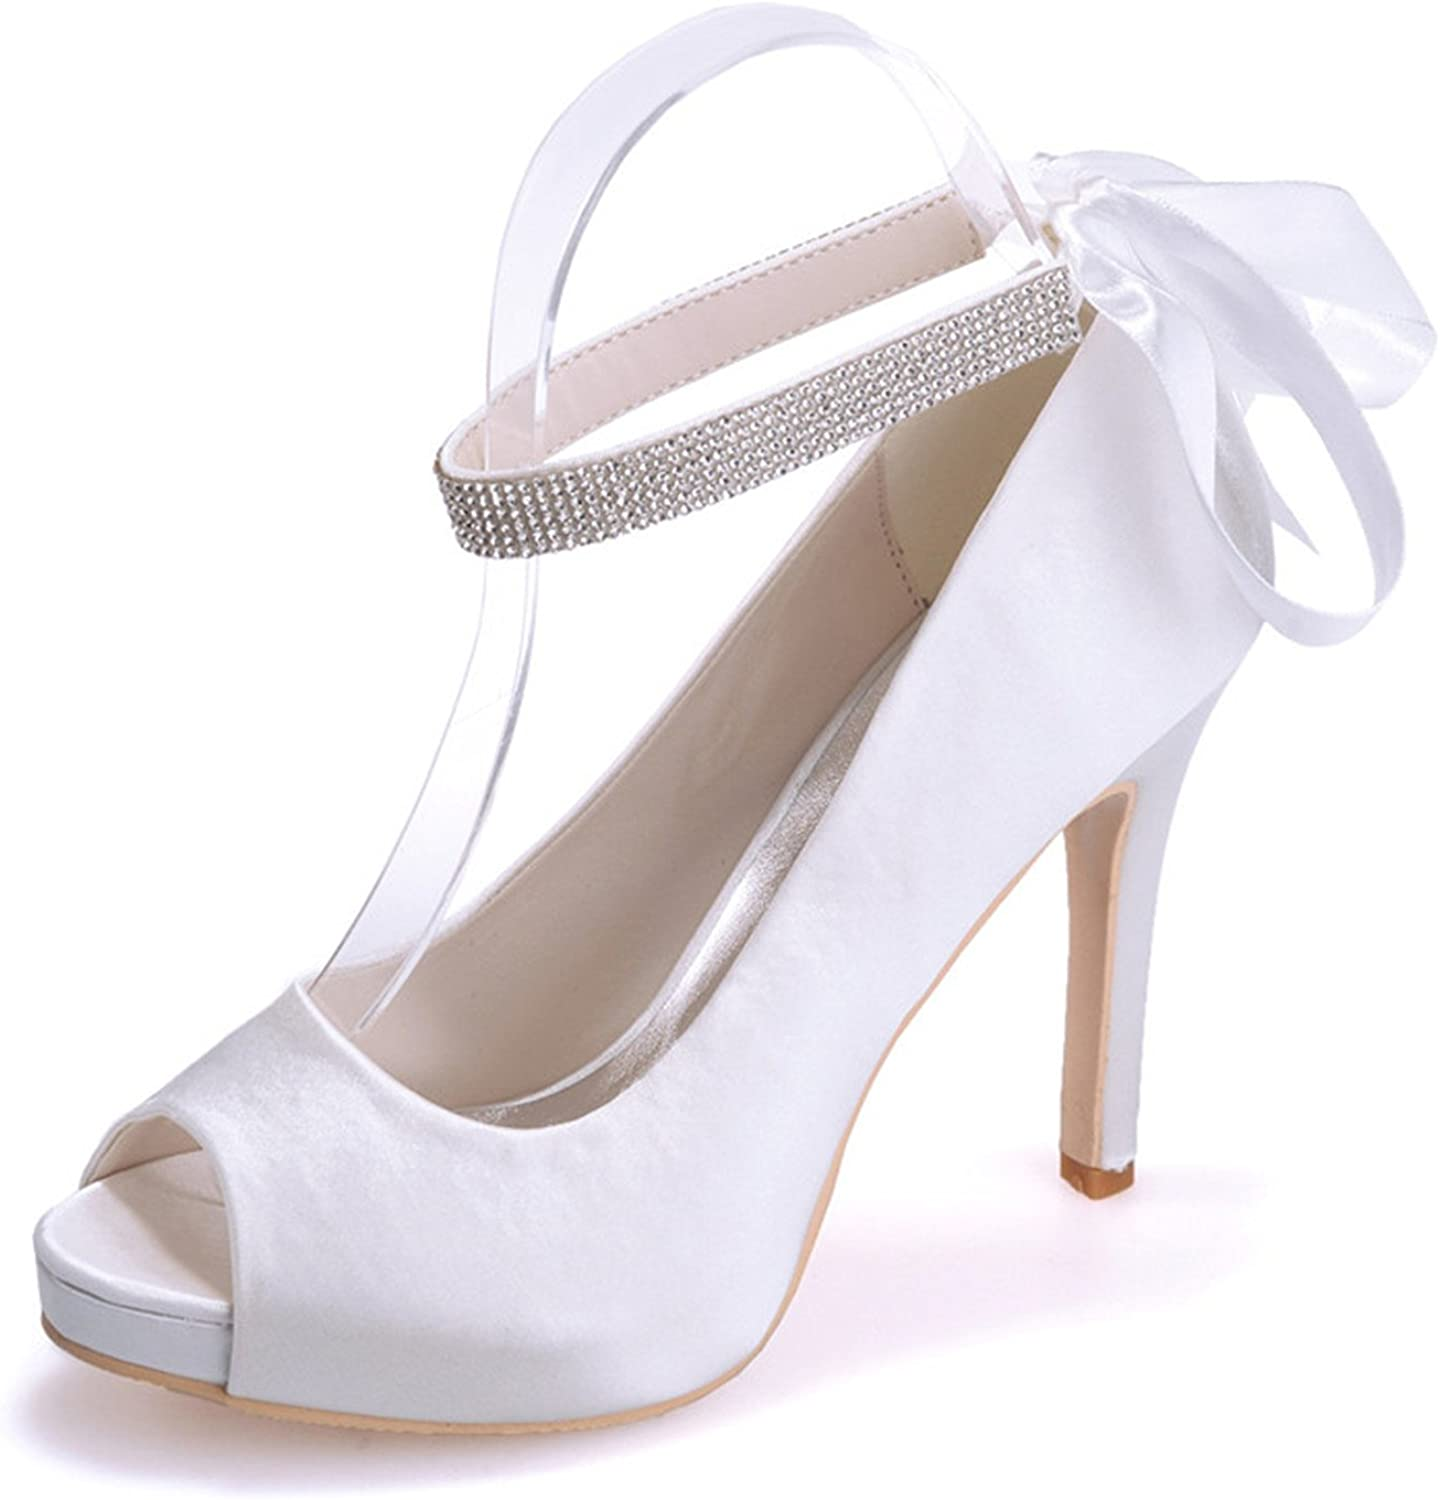 Fanciest Woherrar Bridal bröllop Party Evening Evening Evening Peep -Toe Beads hög klack Pump skor 604  skön